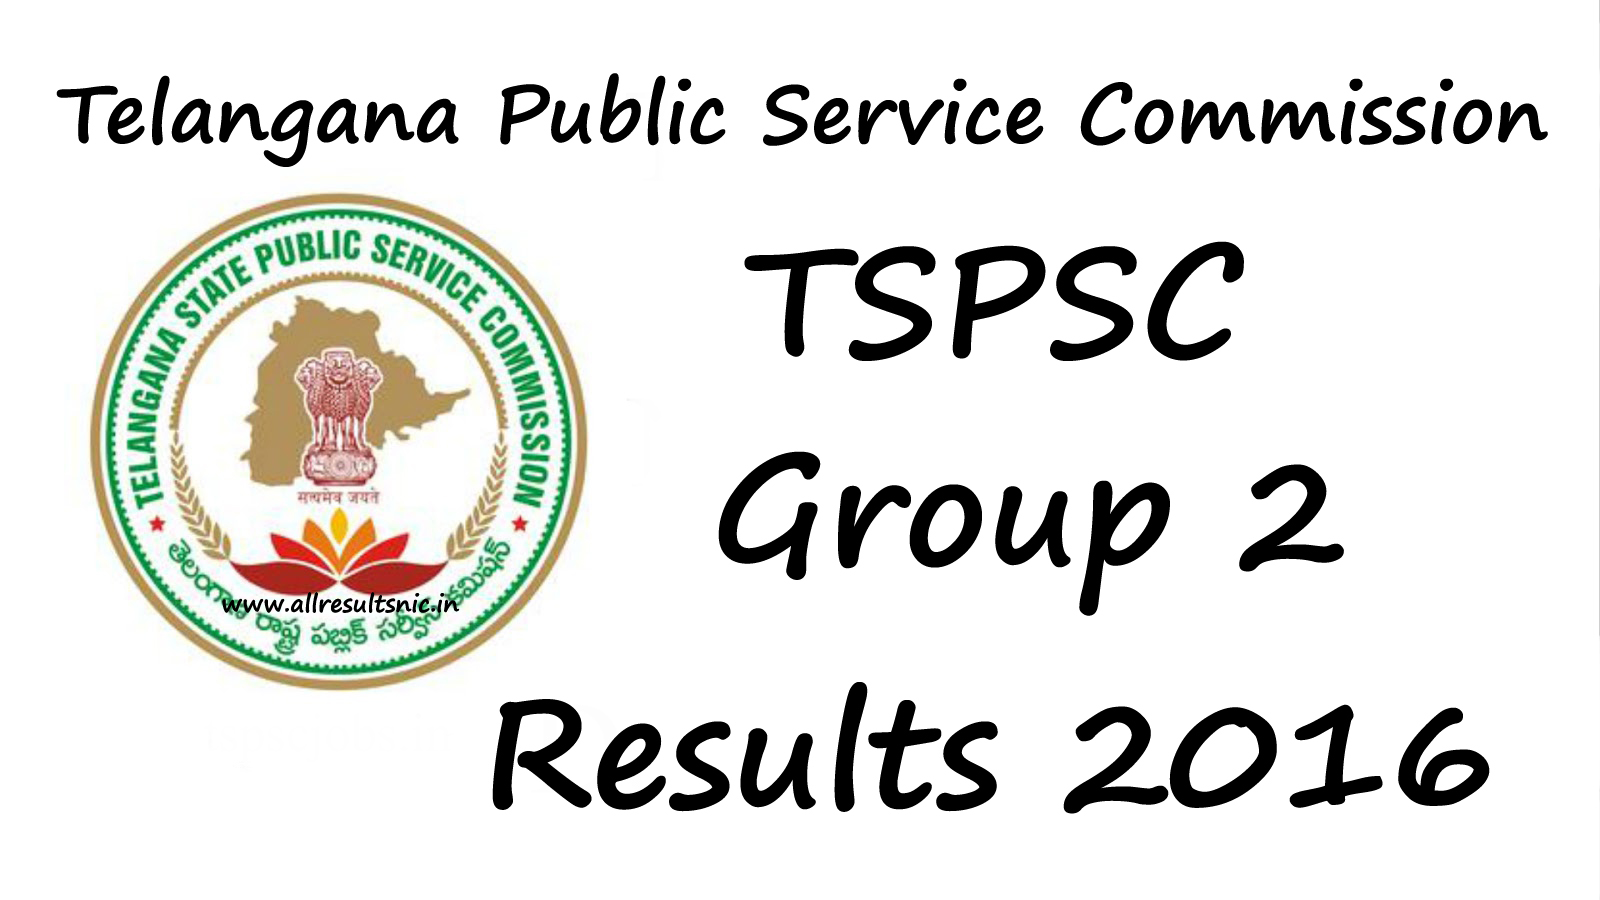 TSPSC Results